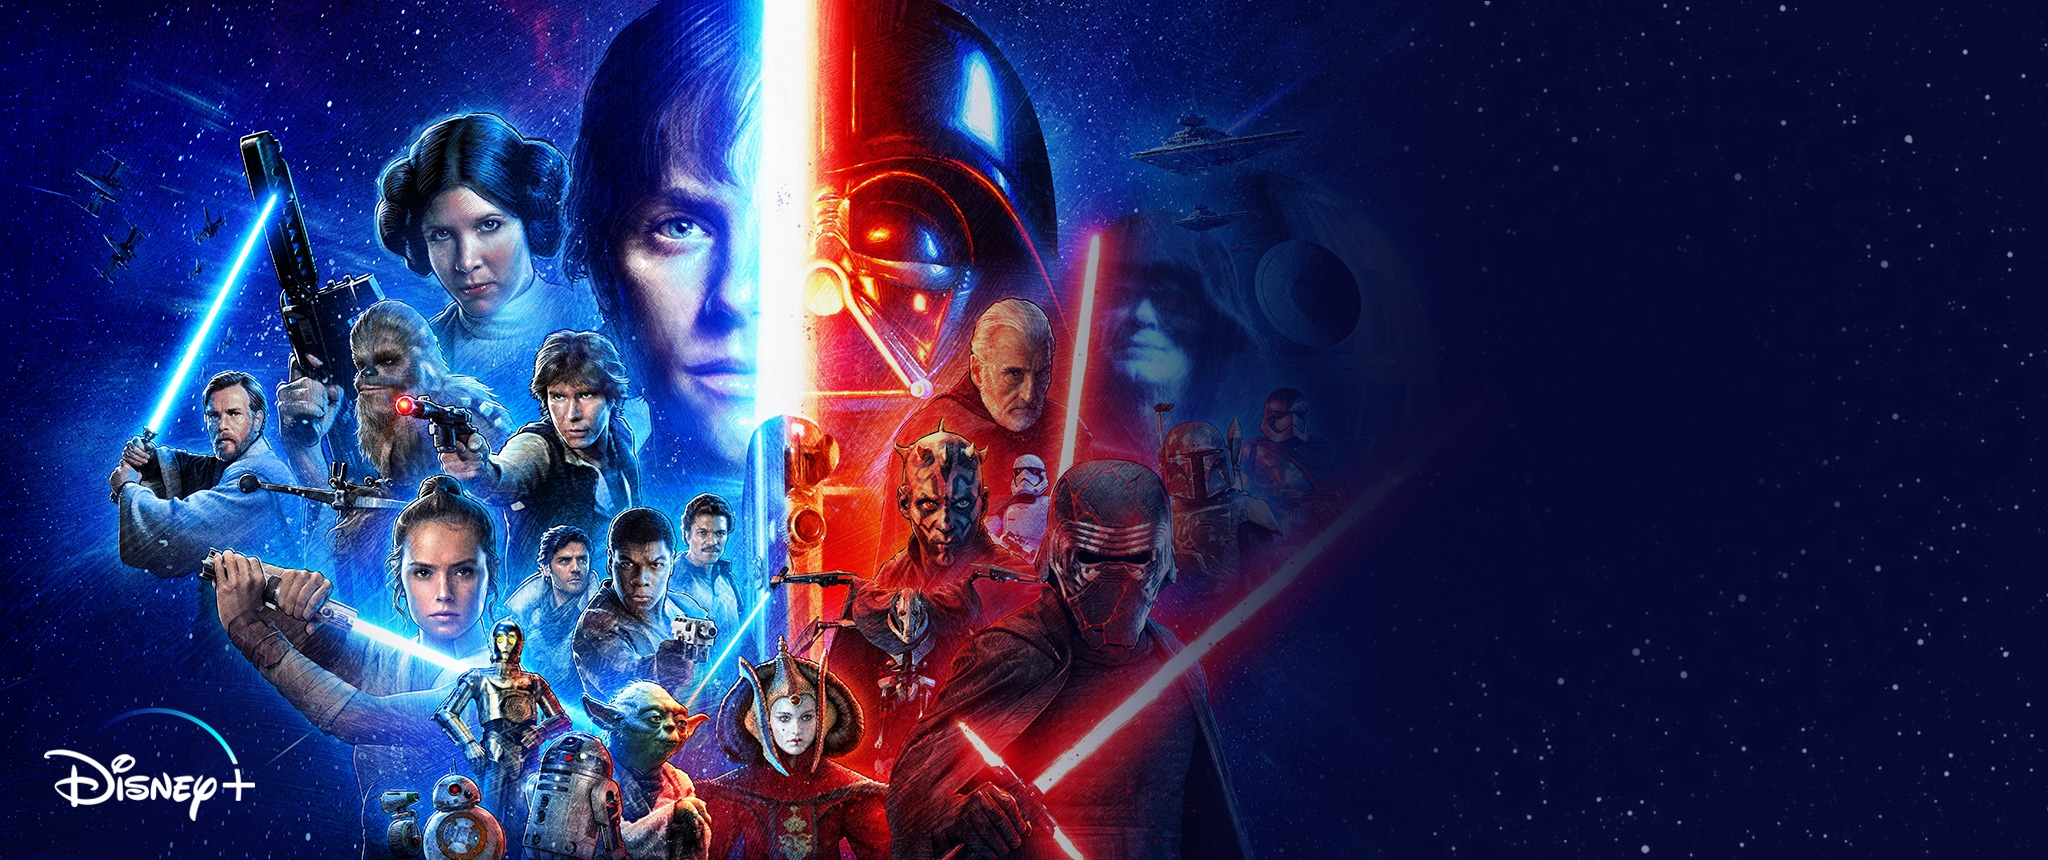 Star Wars: la saga completa è finalmente disponibile | Disney IT